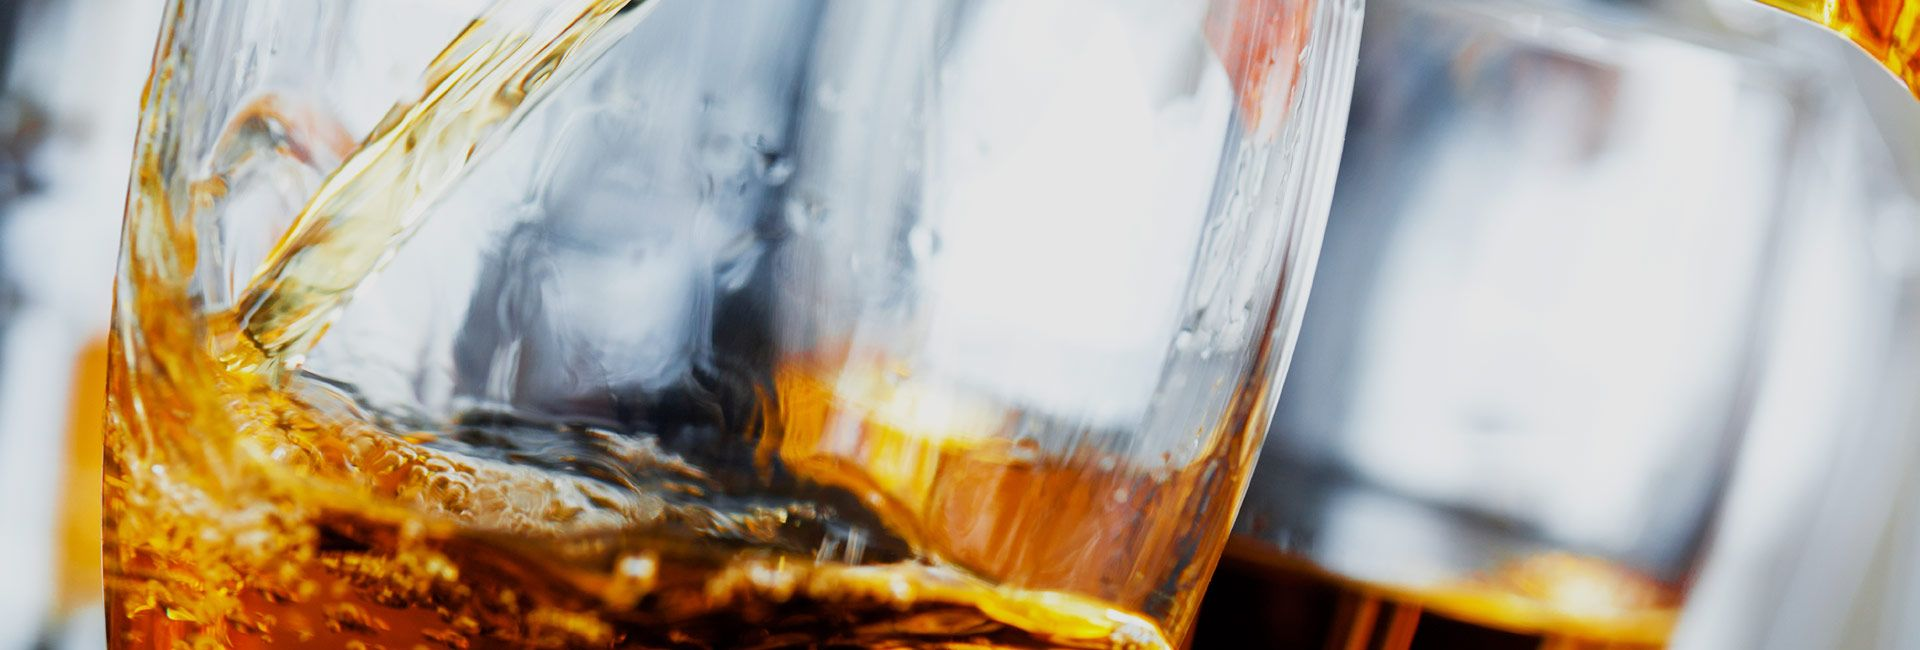 corporate whisky tasting events